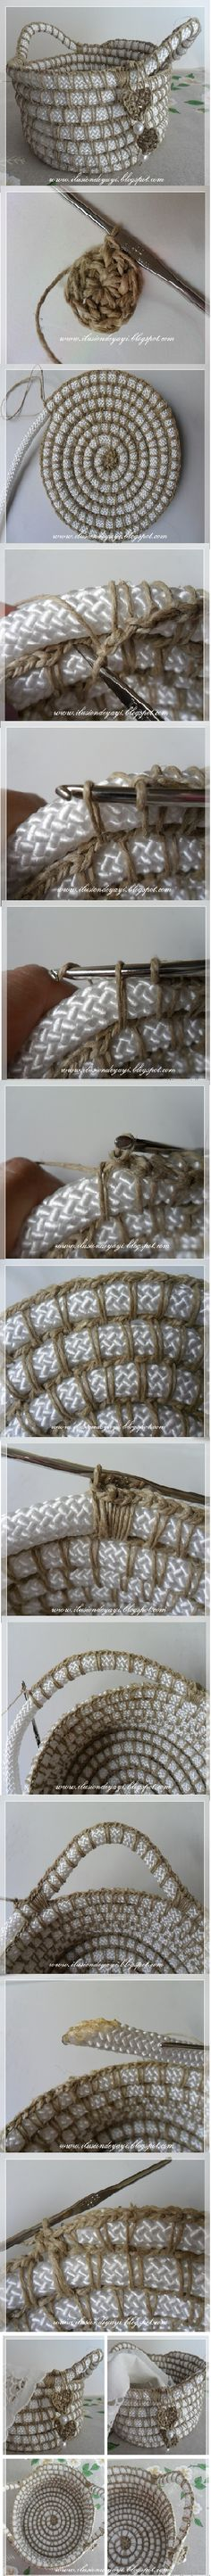 Crochet and Rope Basket Tutorial